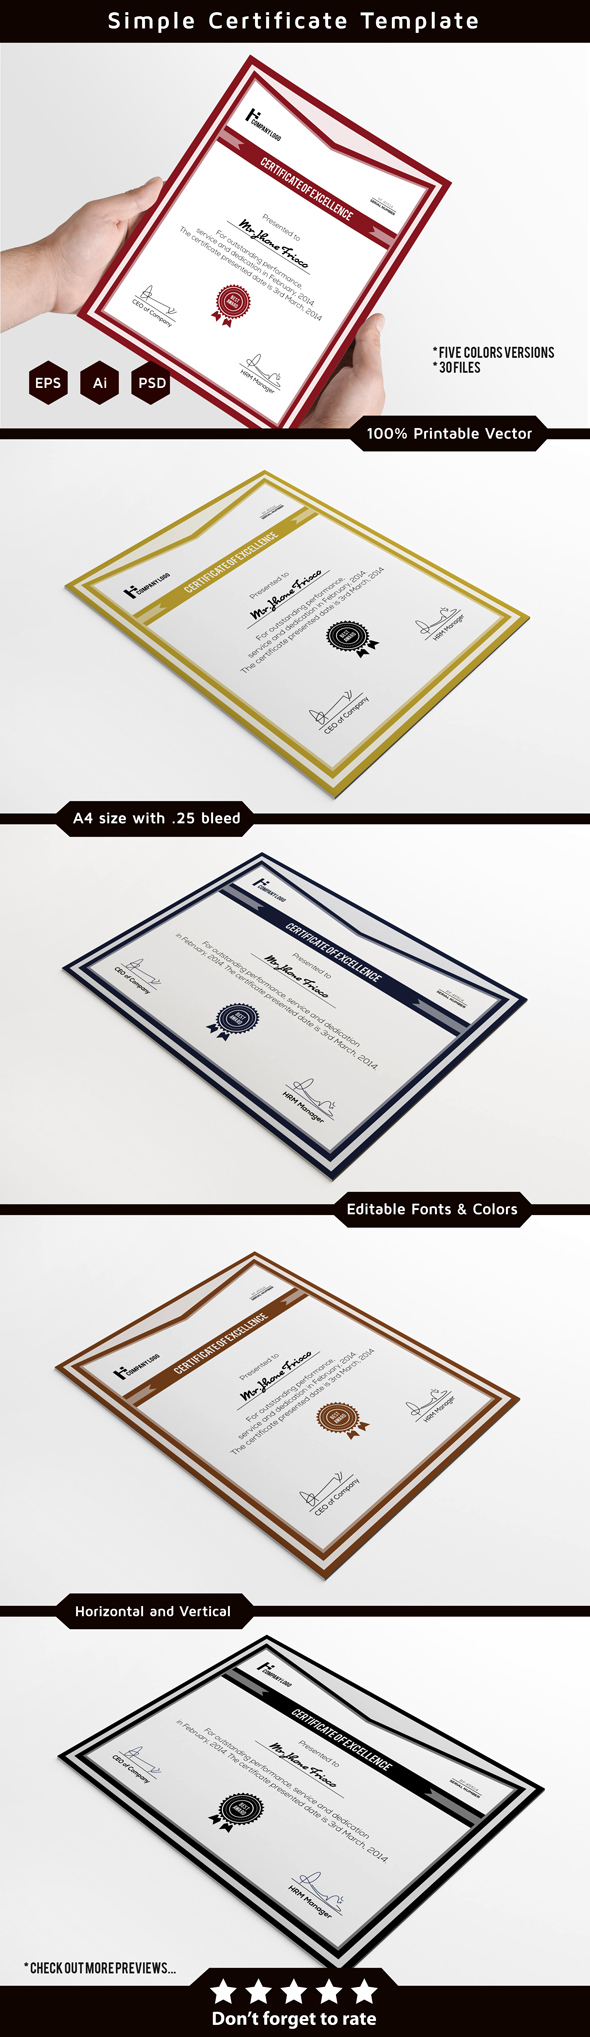 Corporate certificate template on behance certificate template its 100 printable and fully editable available in five color versions and three different file formats with vertical and xflitez Image collections